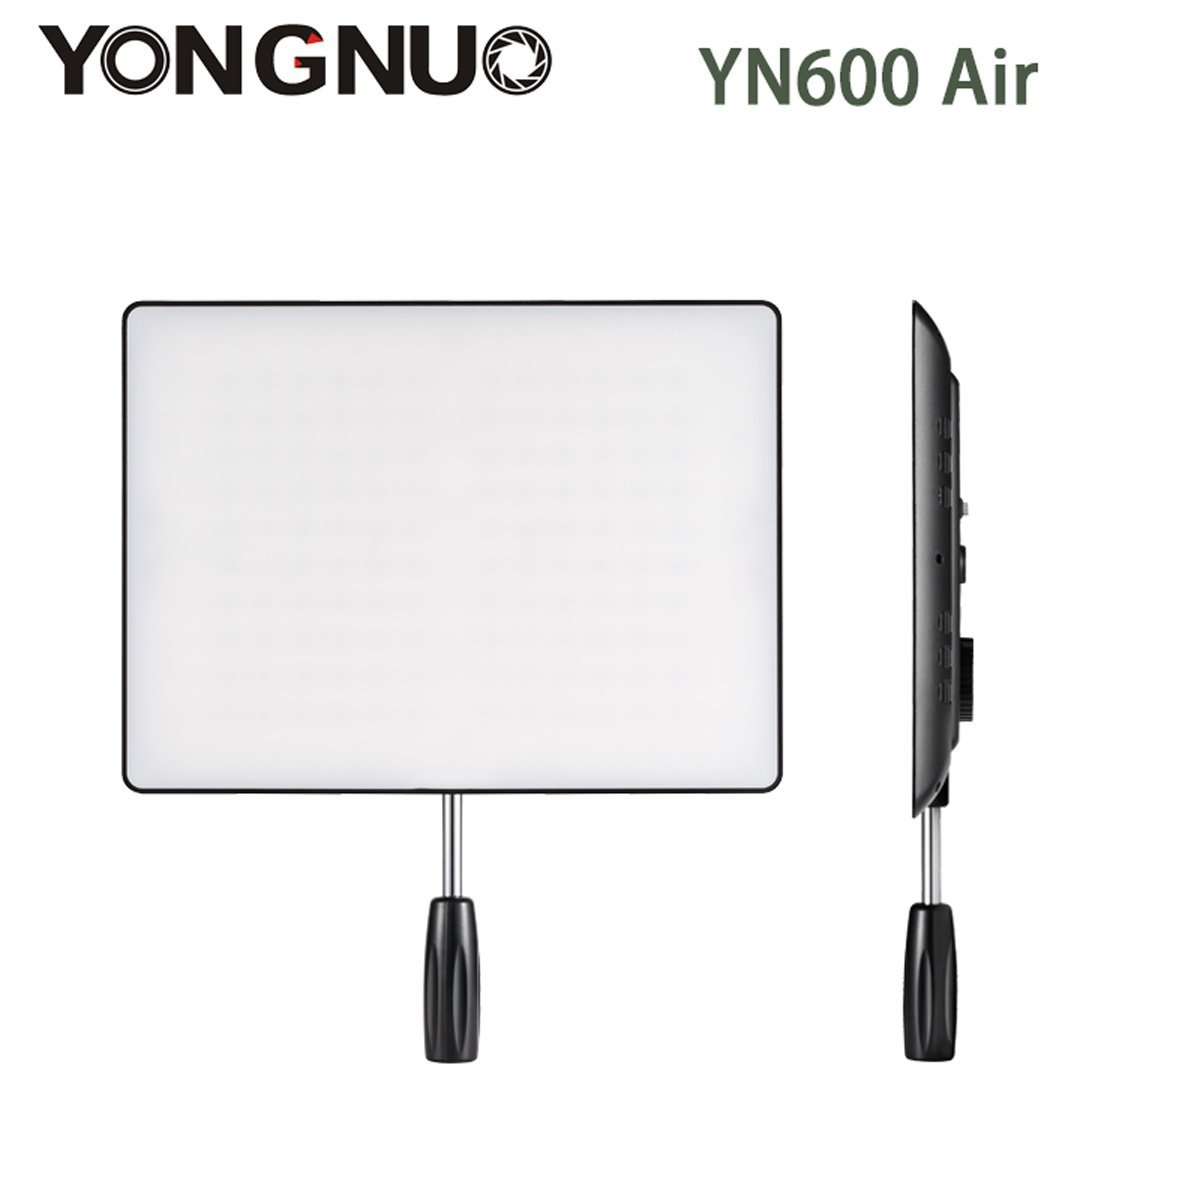 YONGNUO YN600 Air Ultra Thin LED Camera Video Light 3200K-5500K for Canon Nikon Pentax Olympas Samsung DSLR & Camcorder